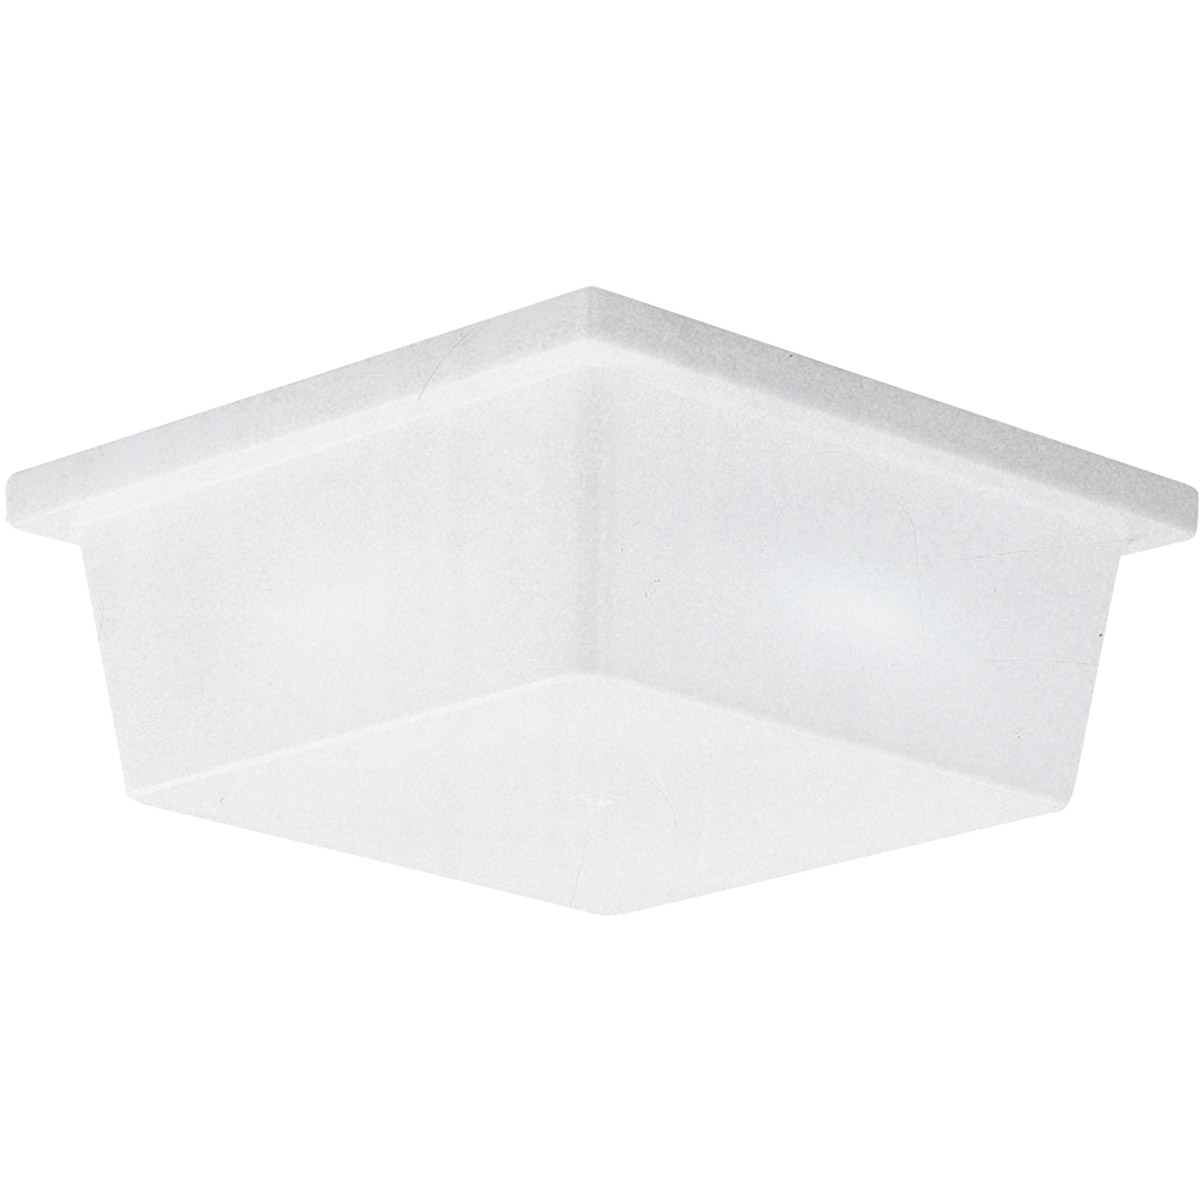 Sea Gull 7916BLE-68 Signature 2 Light 11 inch White Plastic Flush Mount Ceiling Light in Fluorescent photo